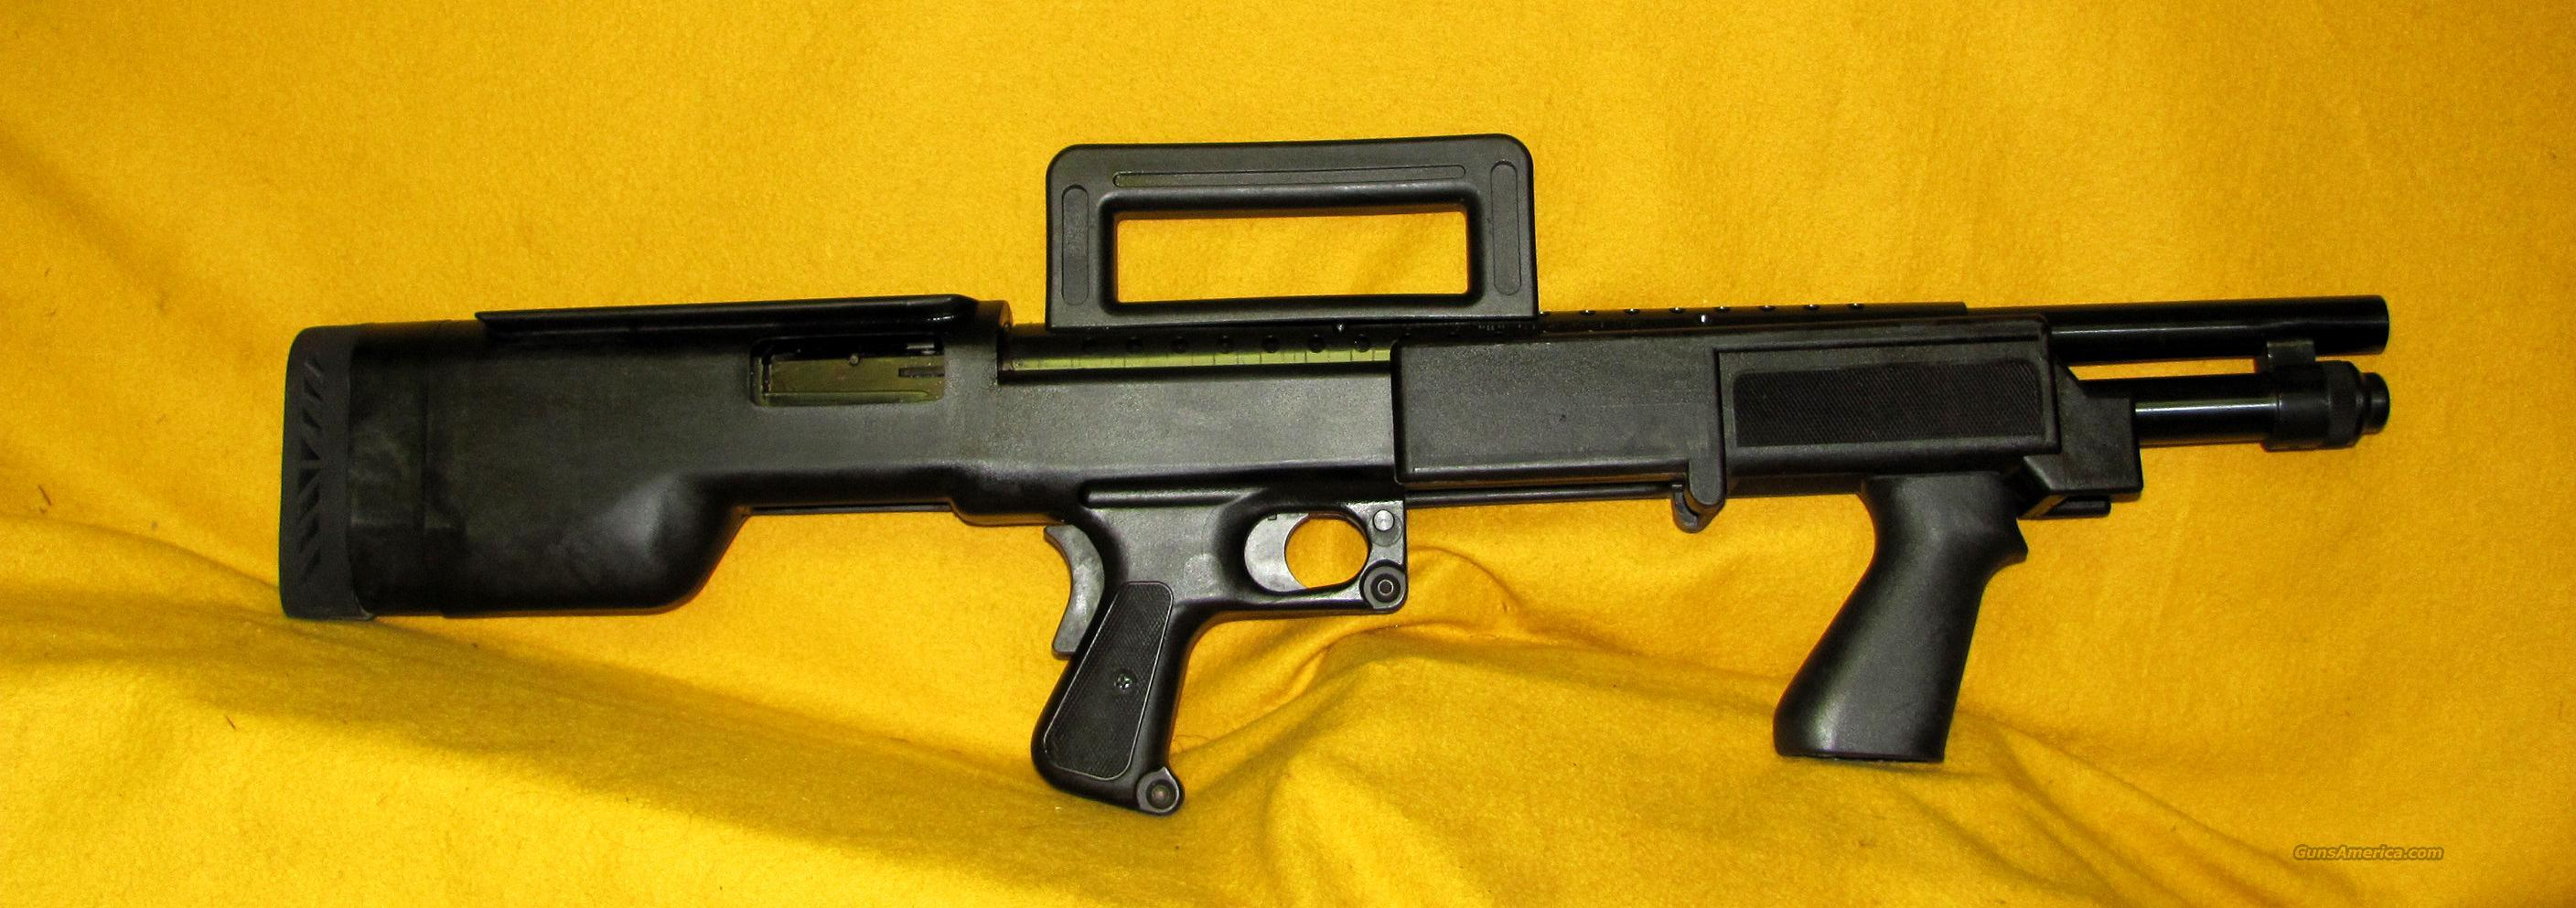 "MOSSBERG 500 BULLPUP 12GA 20""BBL  Guns > Shotguns > Mossberg Shotguns > Pump > Tactical"